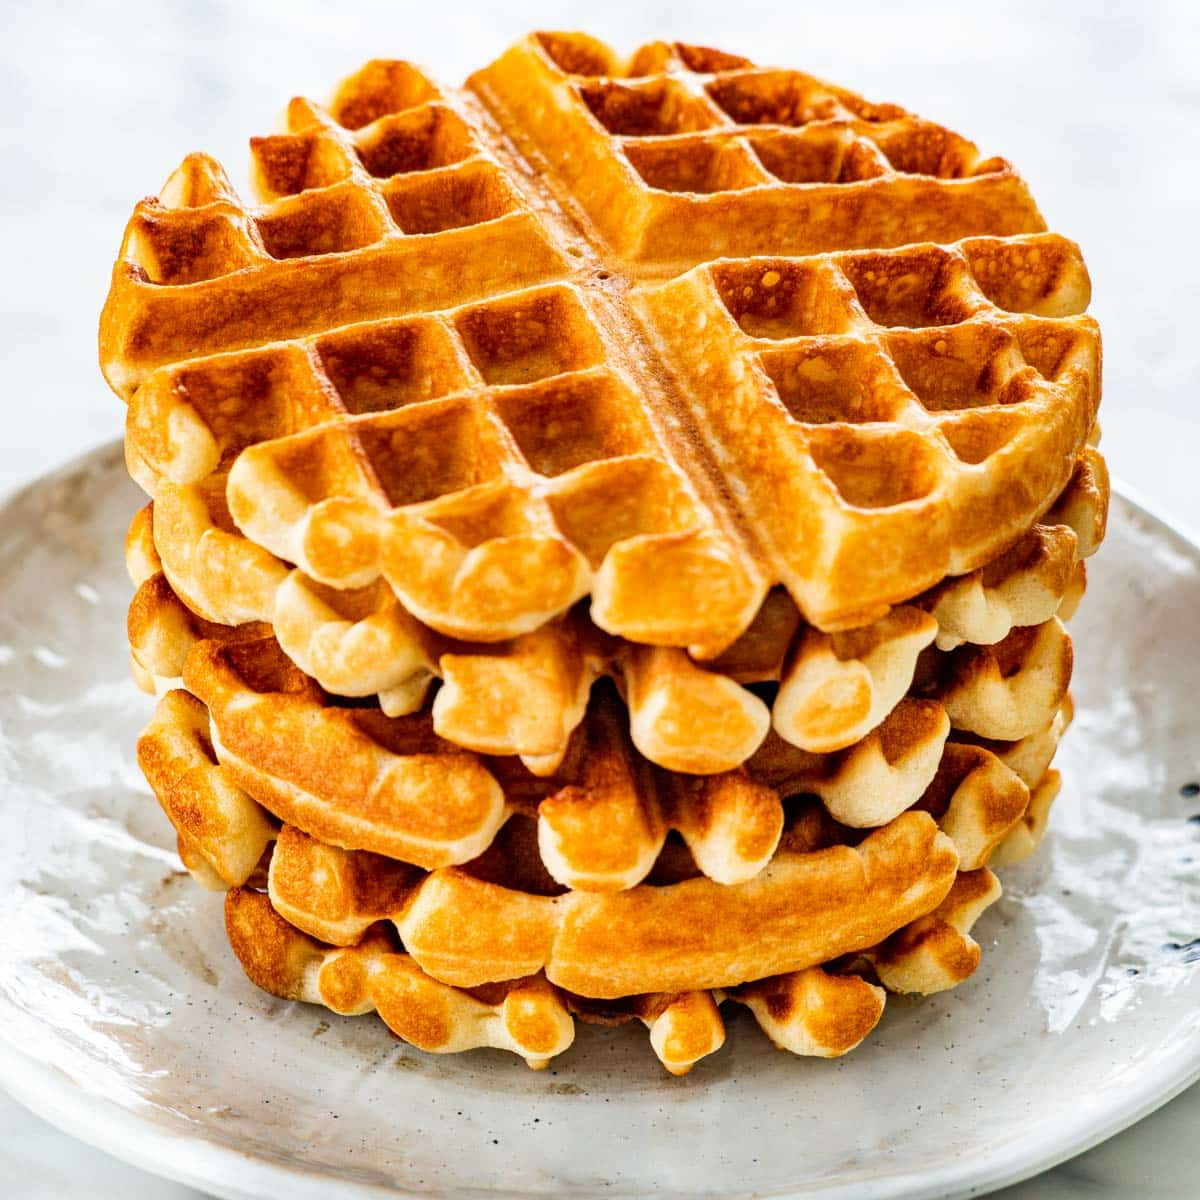 a stack of crispy belgian waffles on a white plate